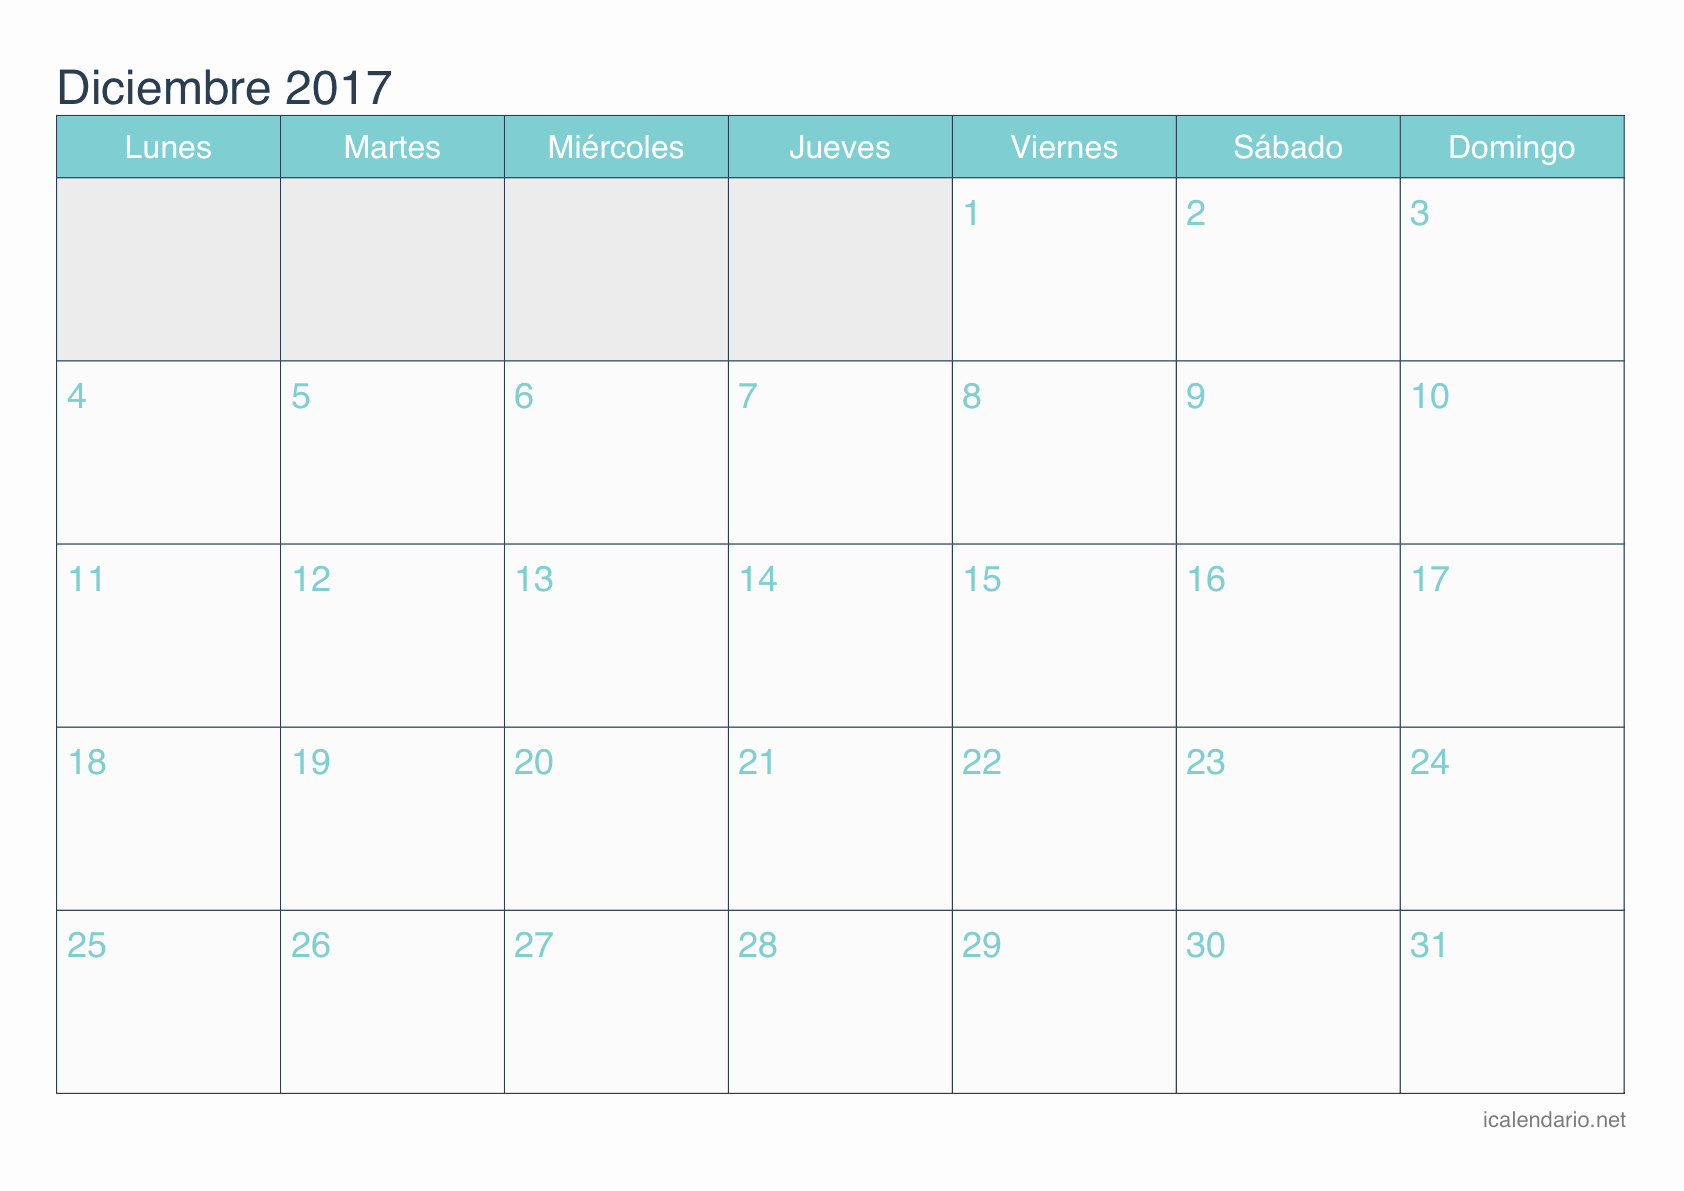 Calendario Diciembre 2017 Para Imprimir Fresh Calendario Noviembre 2016 Para Imprimir Related Keywords